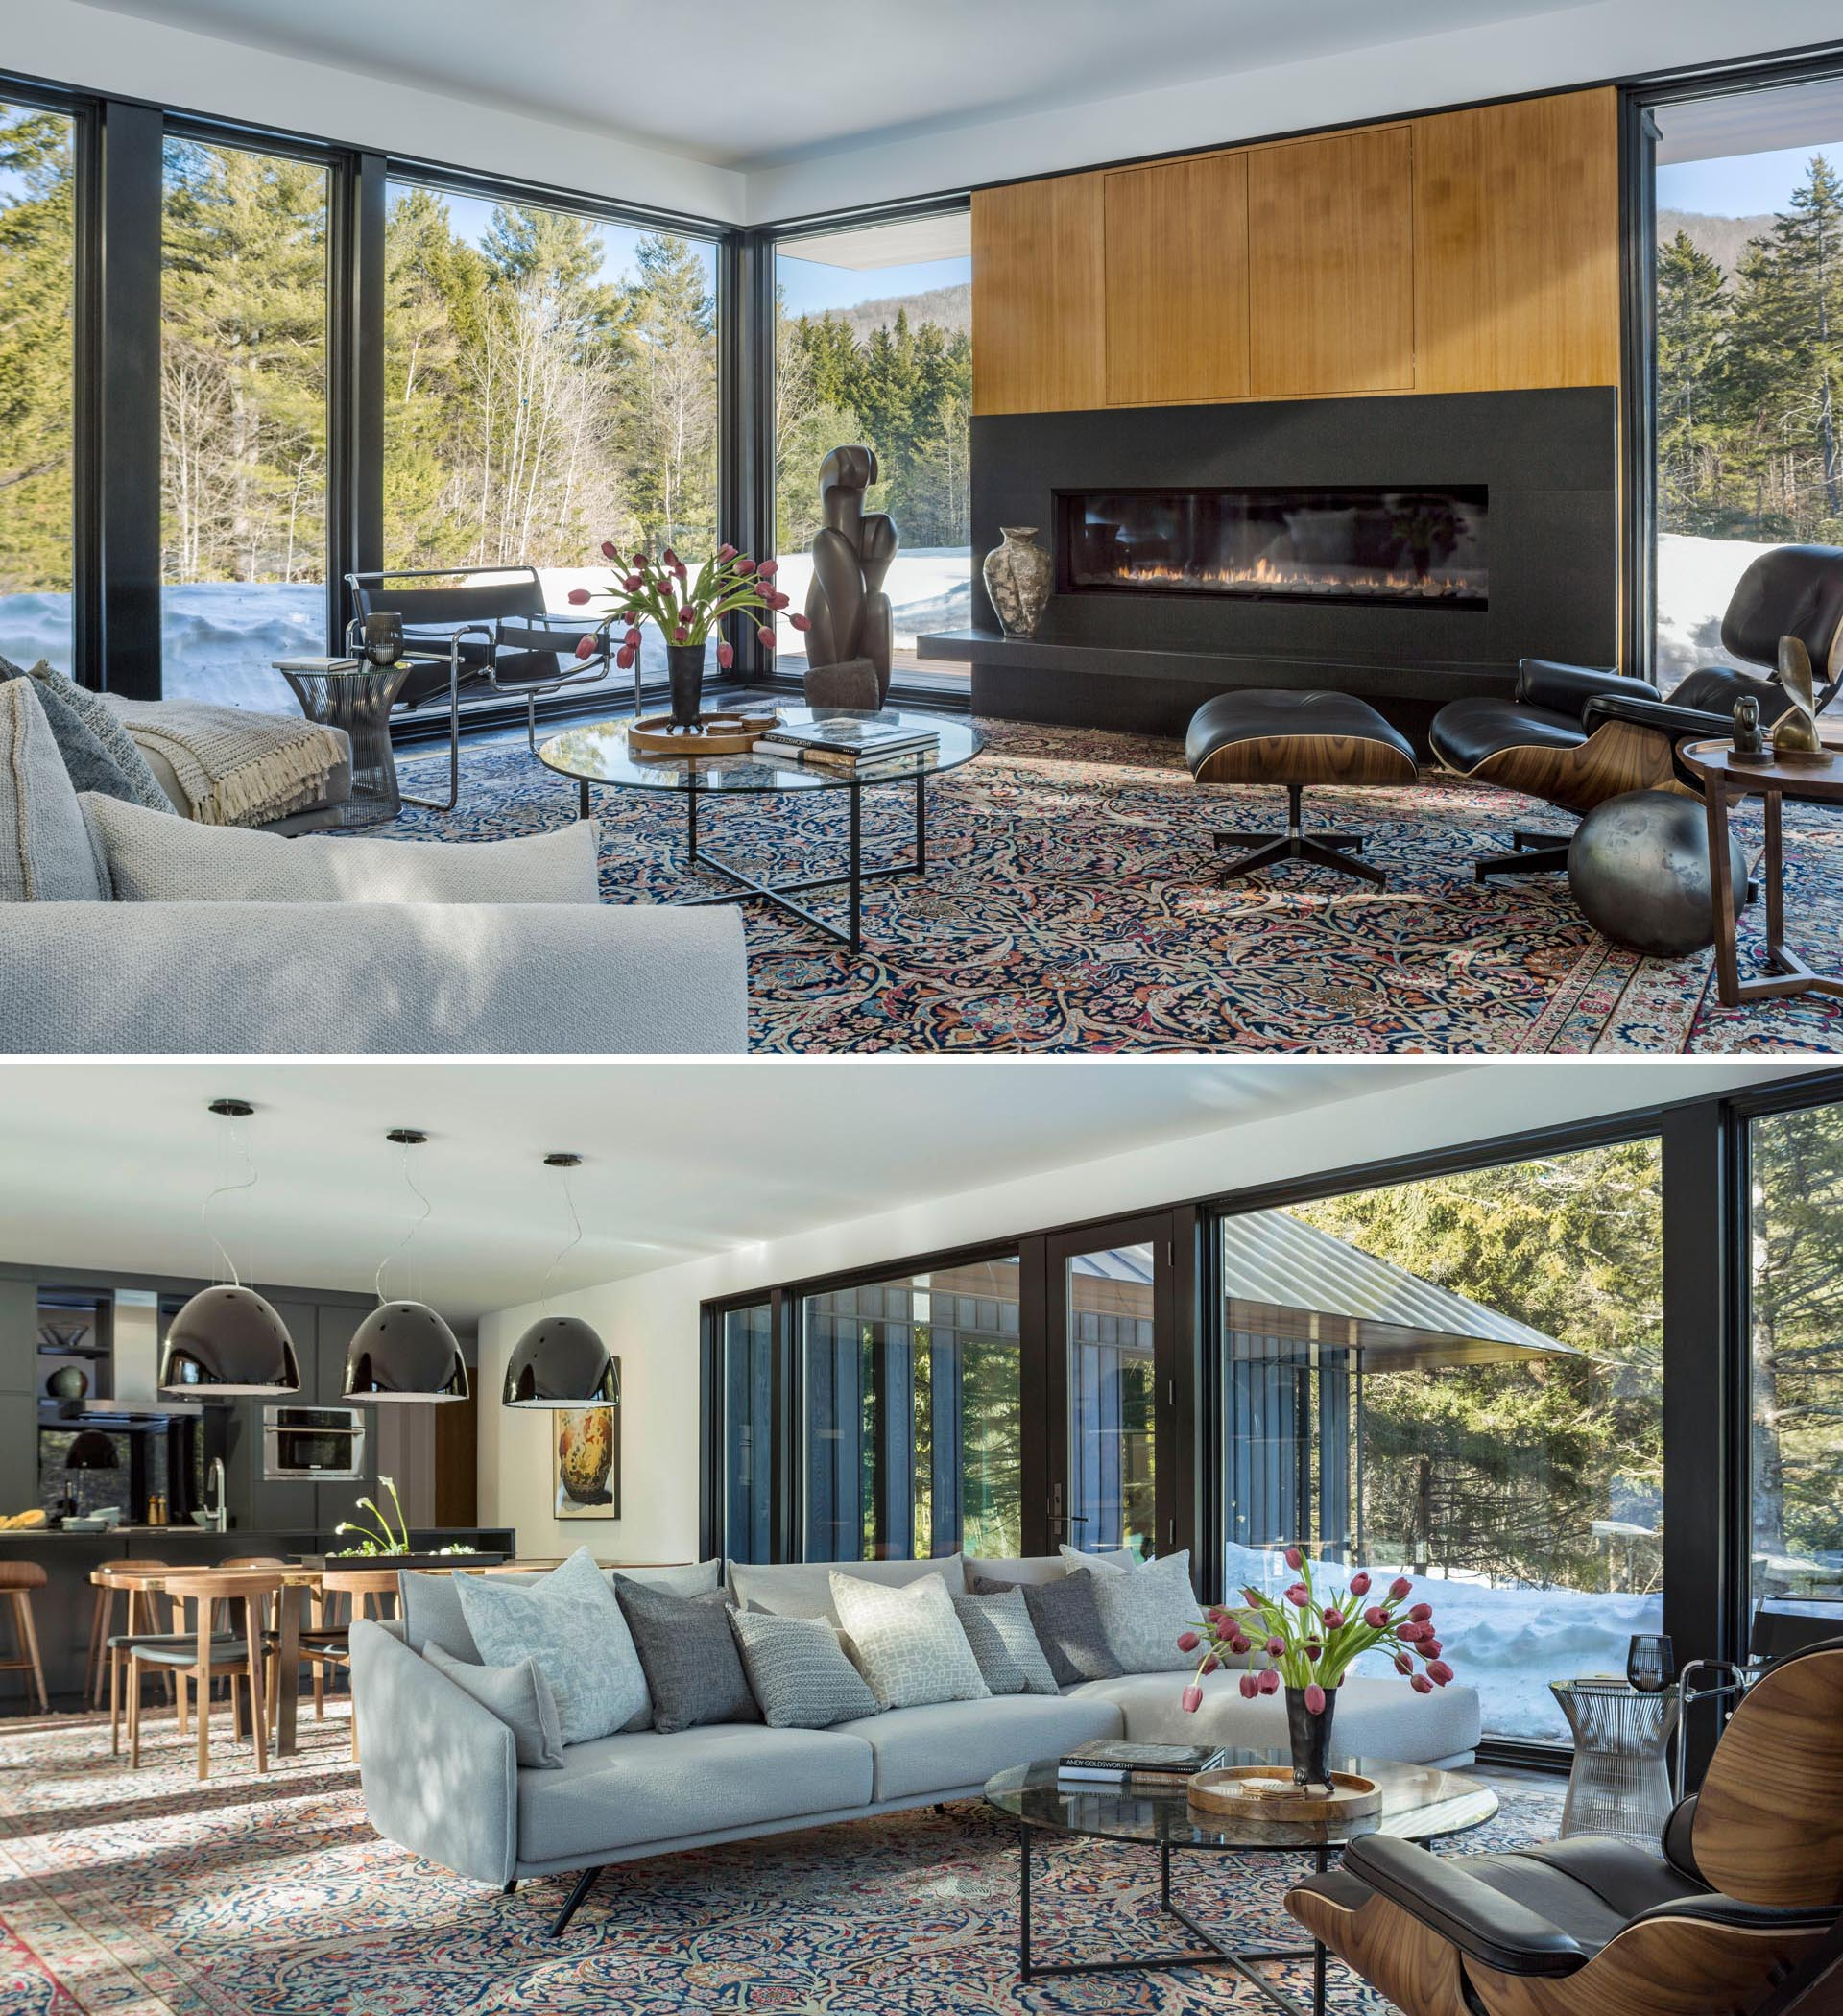 In this modern living room, floor-to-ceiling windows provide ample views of the surrounding meadow and forest, while the large linear fireplace creates a focal point in the room.